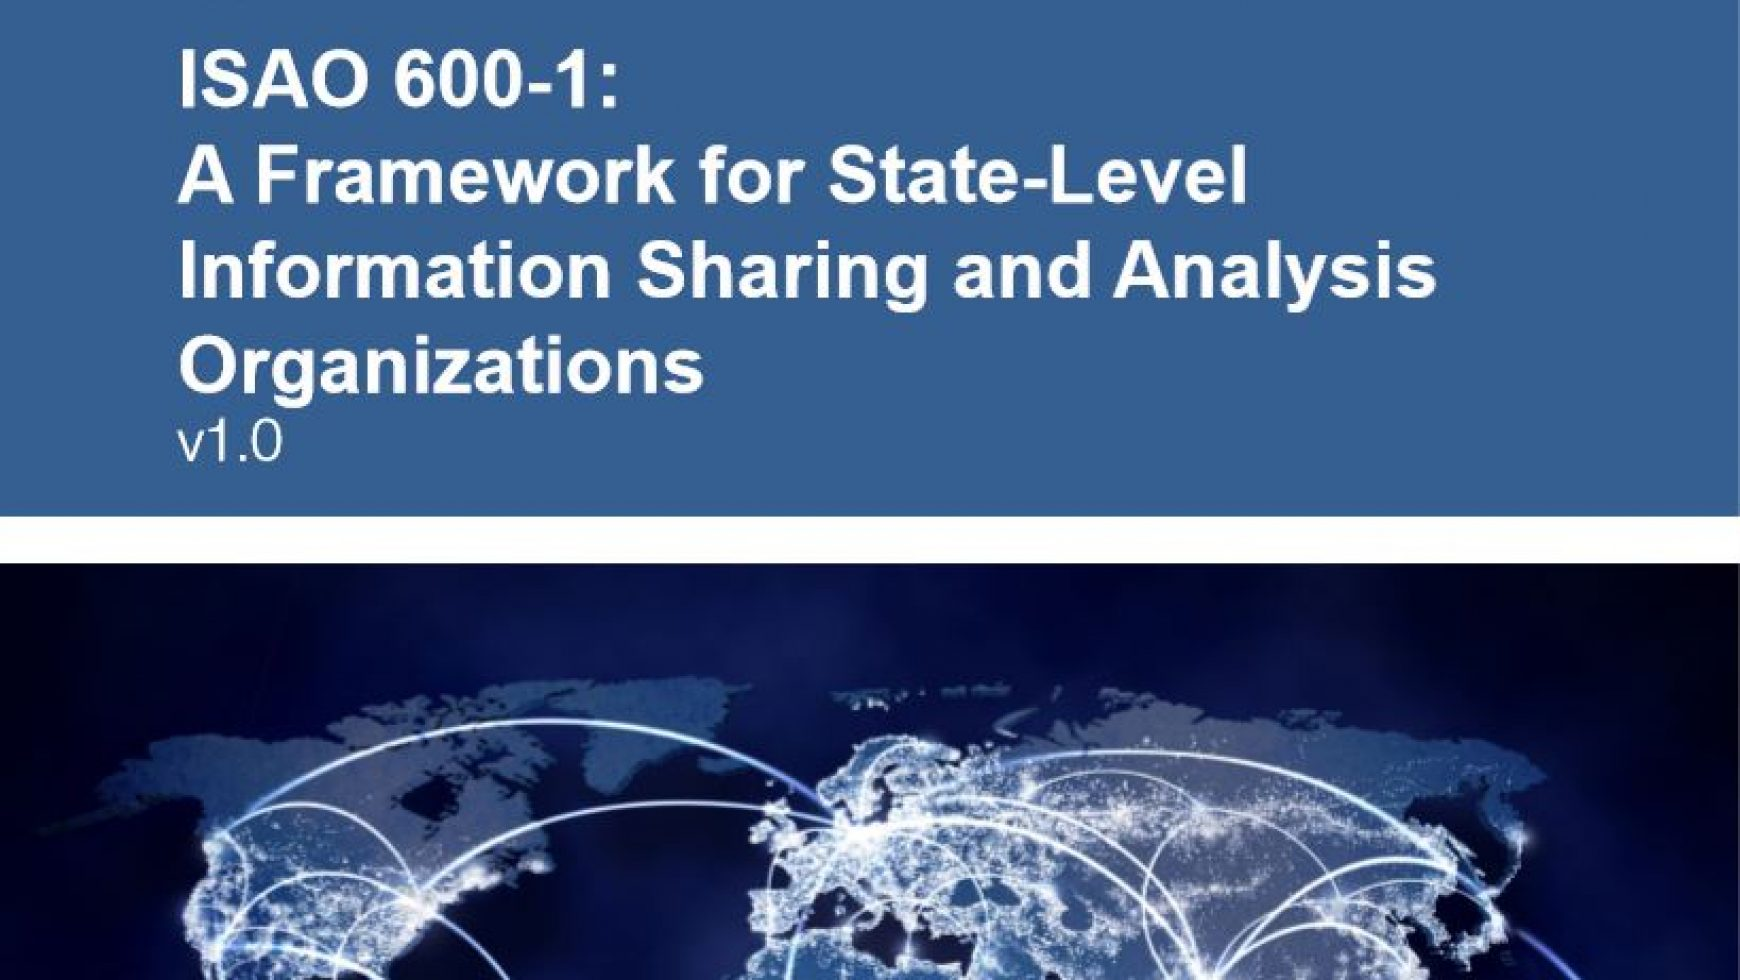 ISAO Standards Organization Announces New Publication ISAO 600-1: A Framework for State-Level Information Sharing and Analysis Organizations